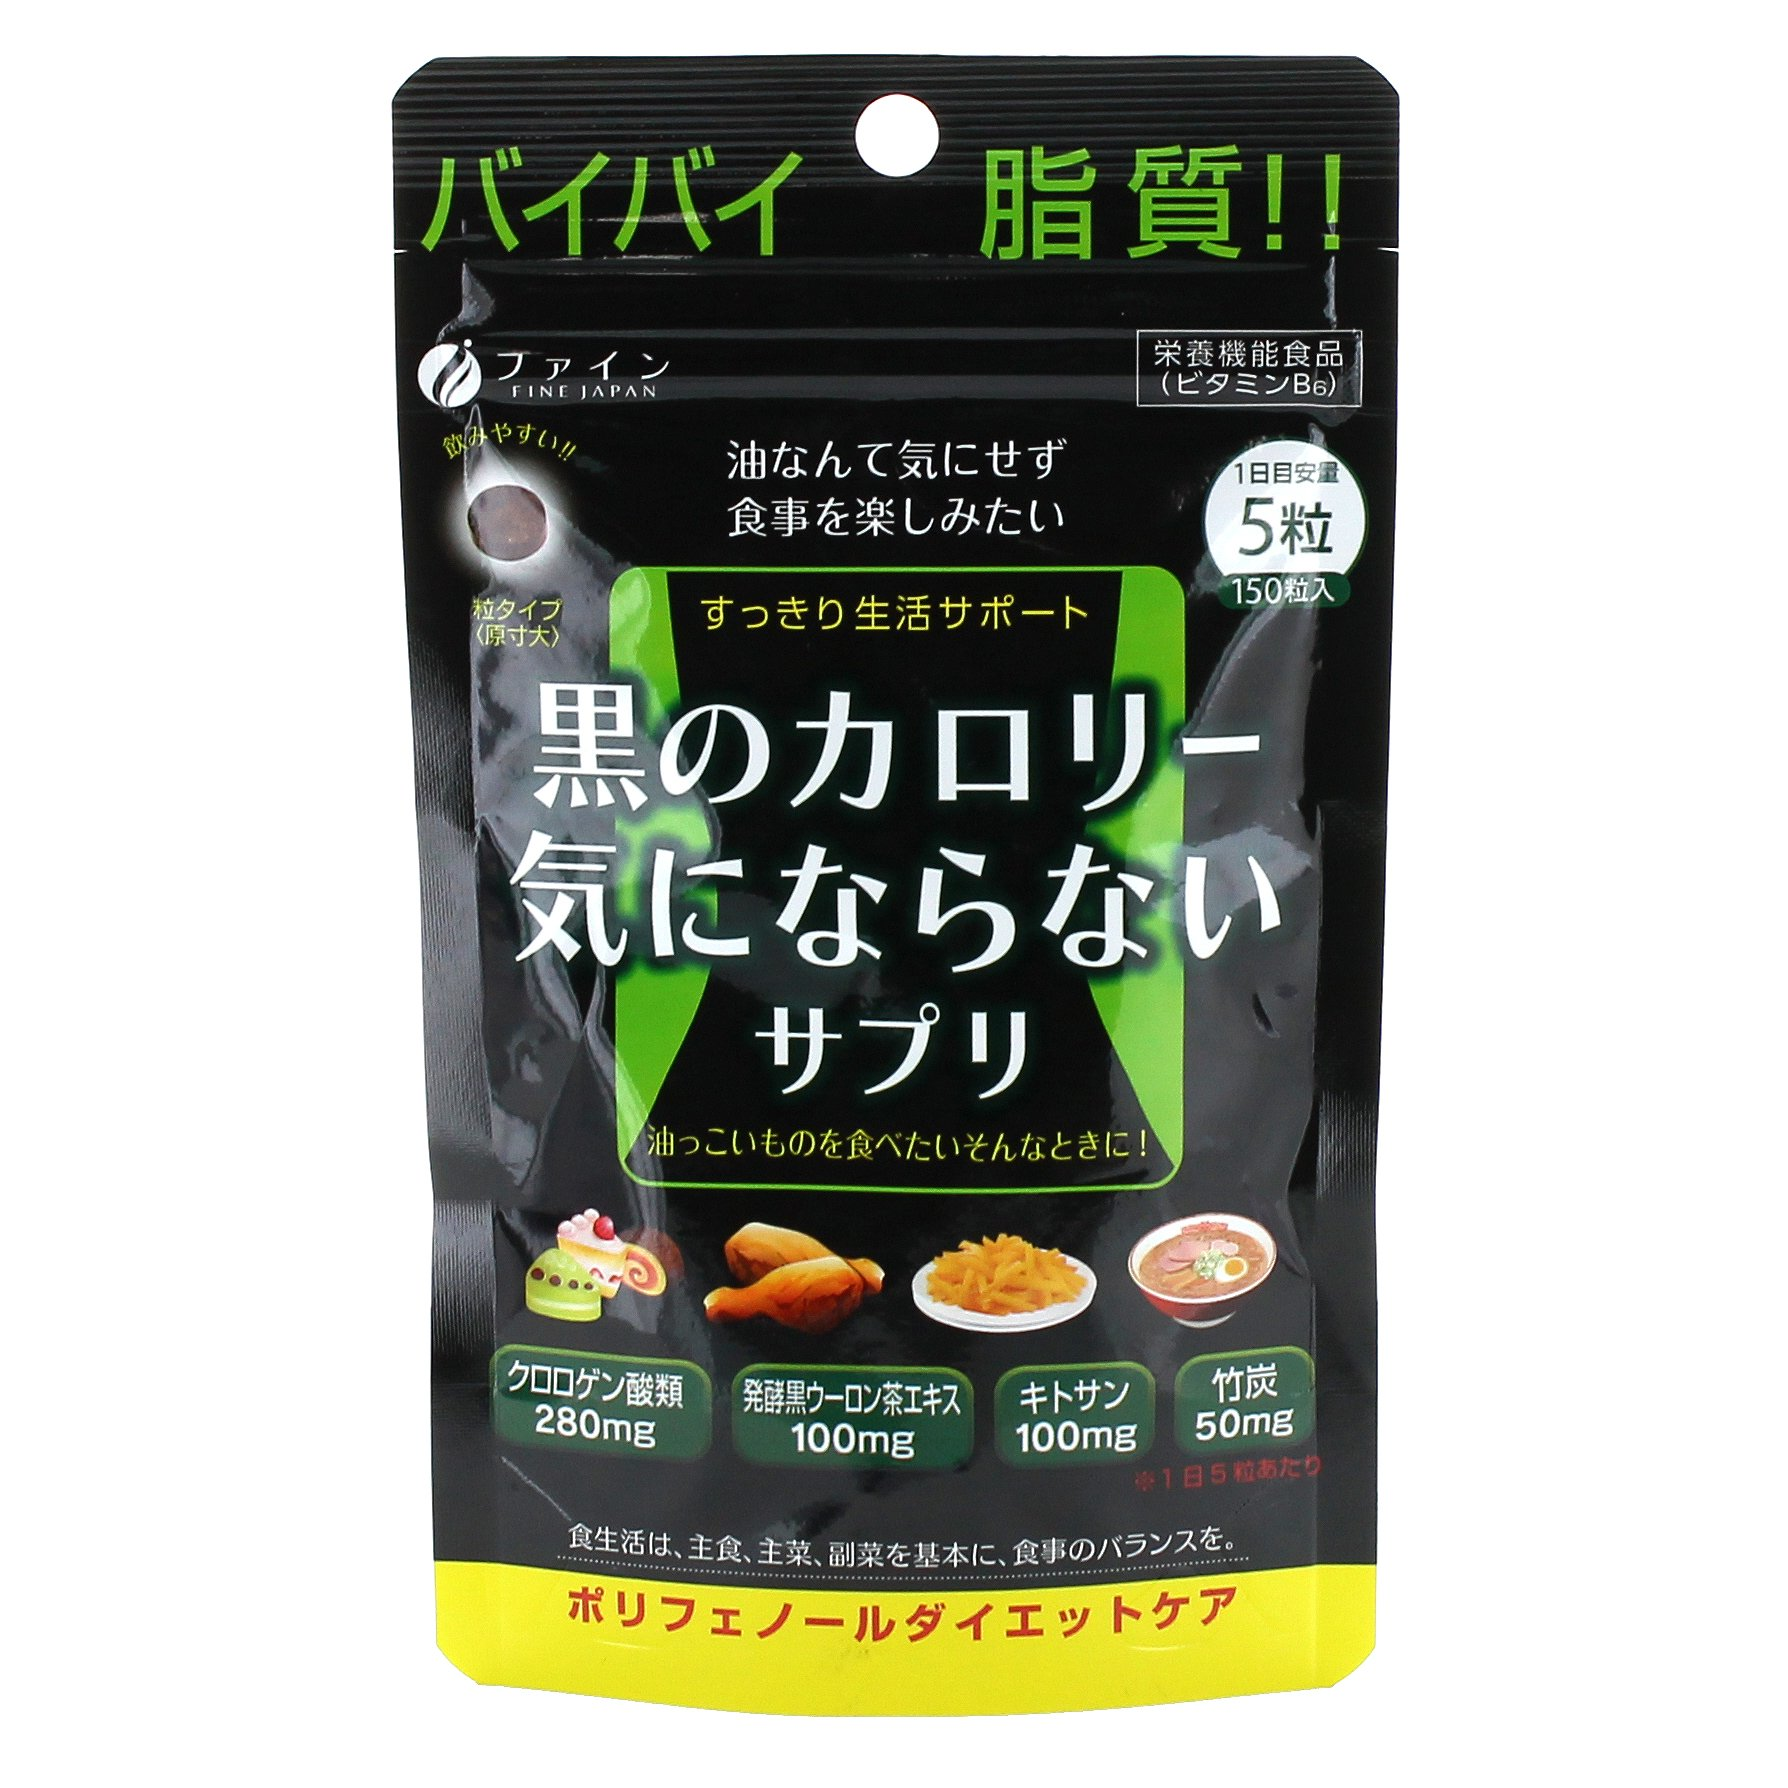 Calorie Burn Black Japan: The Convenient Pill That Lets You Stop Worrying About What You Eat  Carbohydrate Blocker   Fat Inhibitor  Fat Burner by newseacollagen (Image #6)